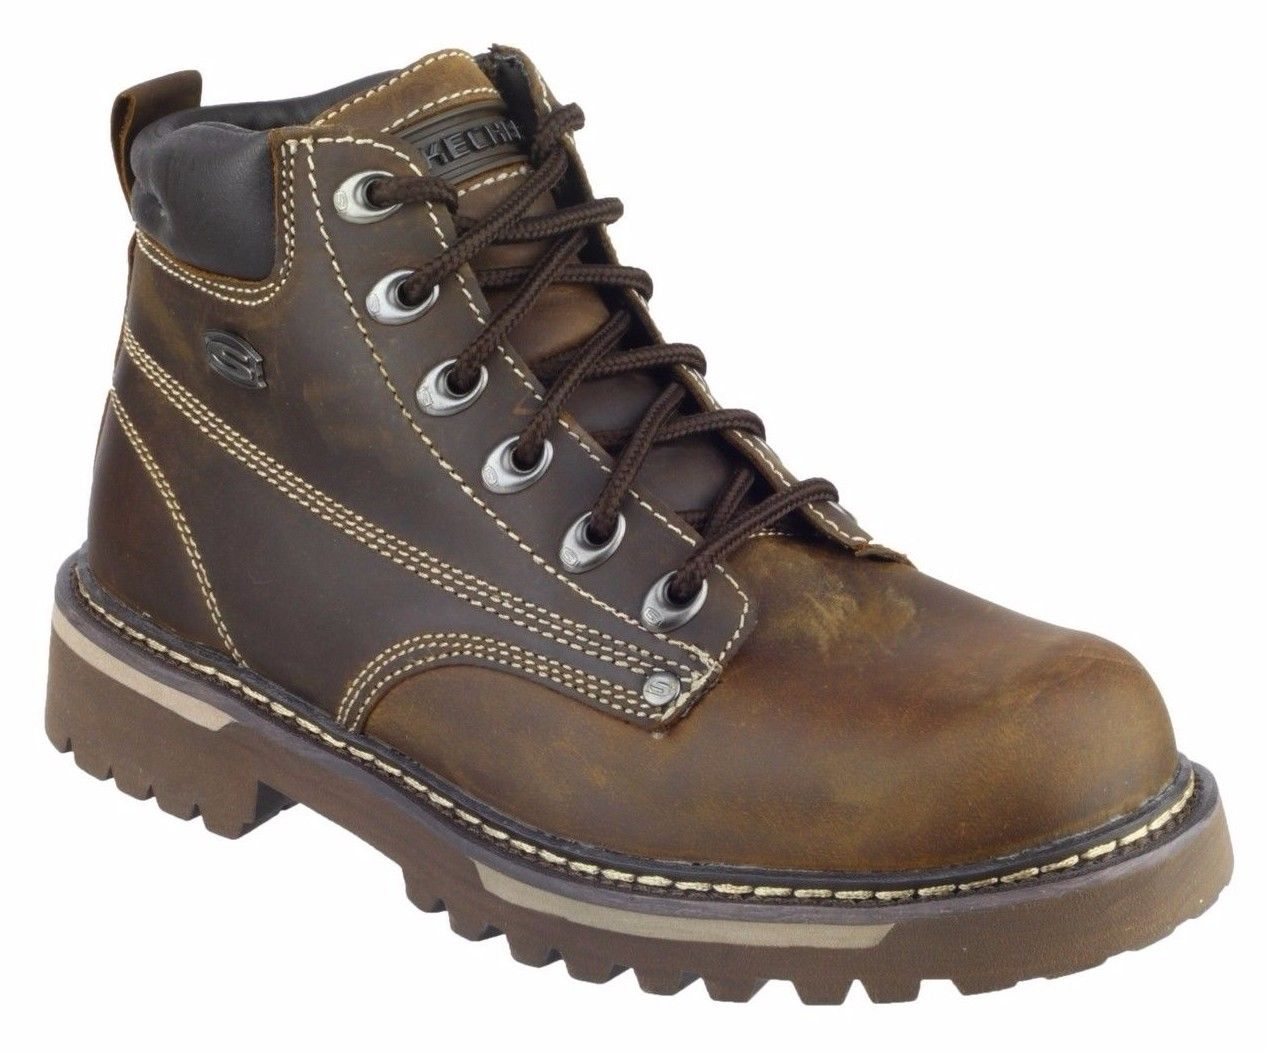 Skechers-SK4479-Homme-Cool-Cat-Bully-2-Brown-Lace-Up-Boot-Taille-6-12